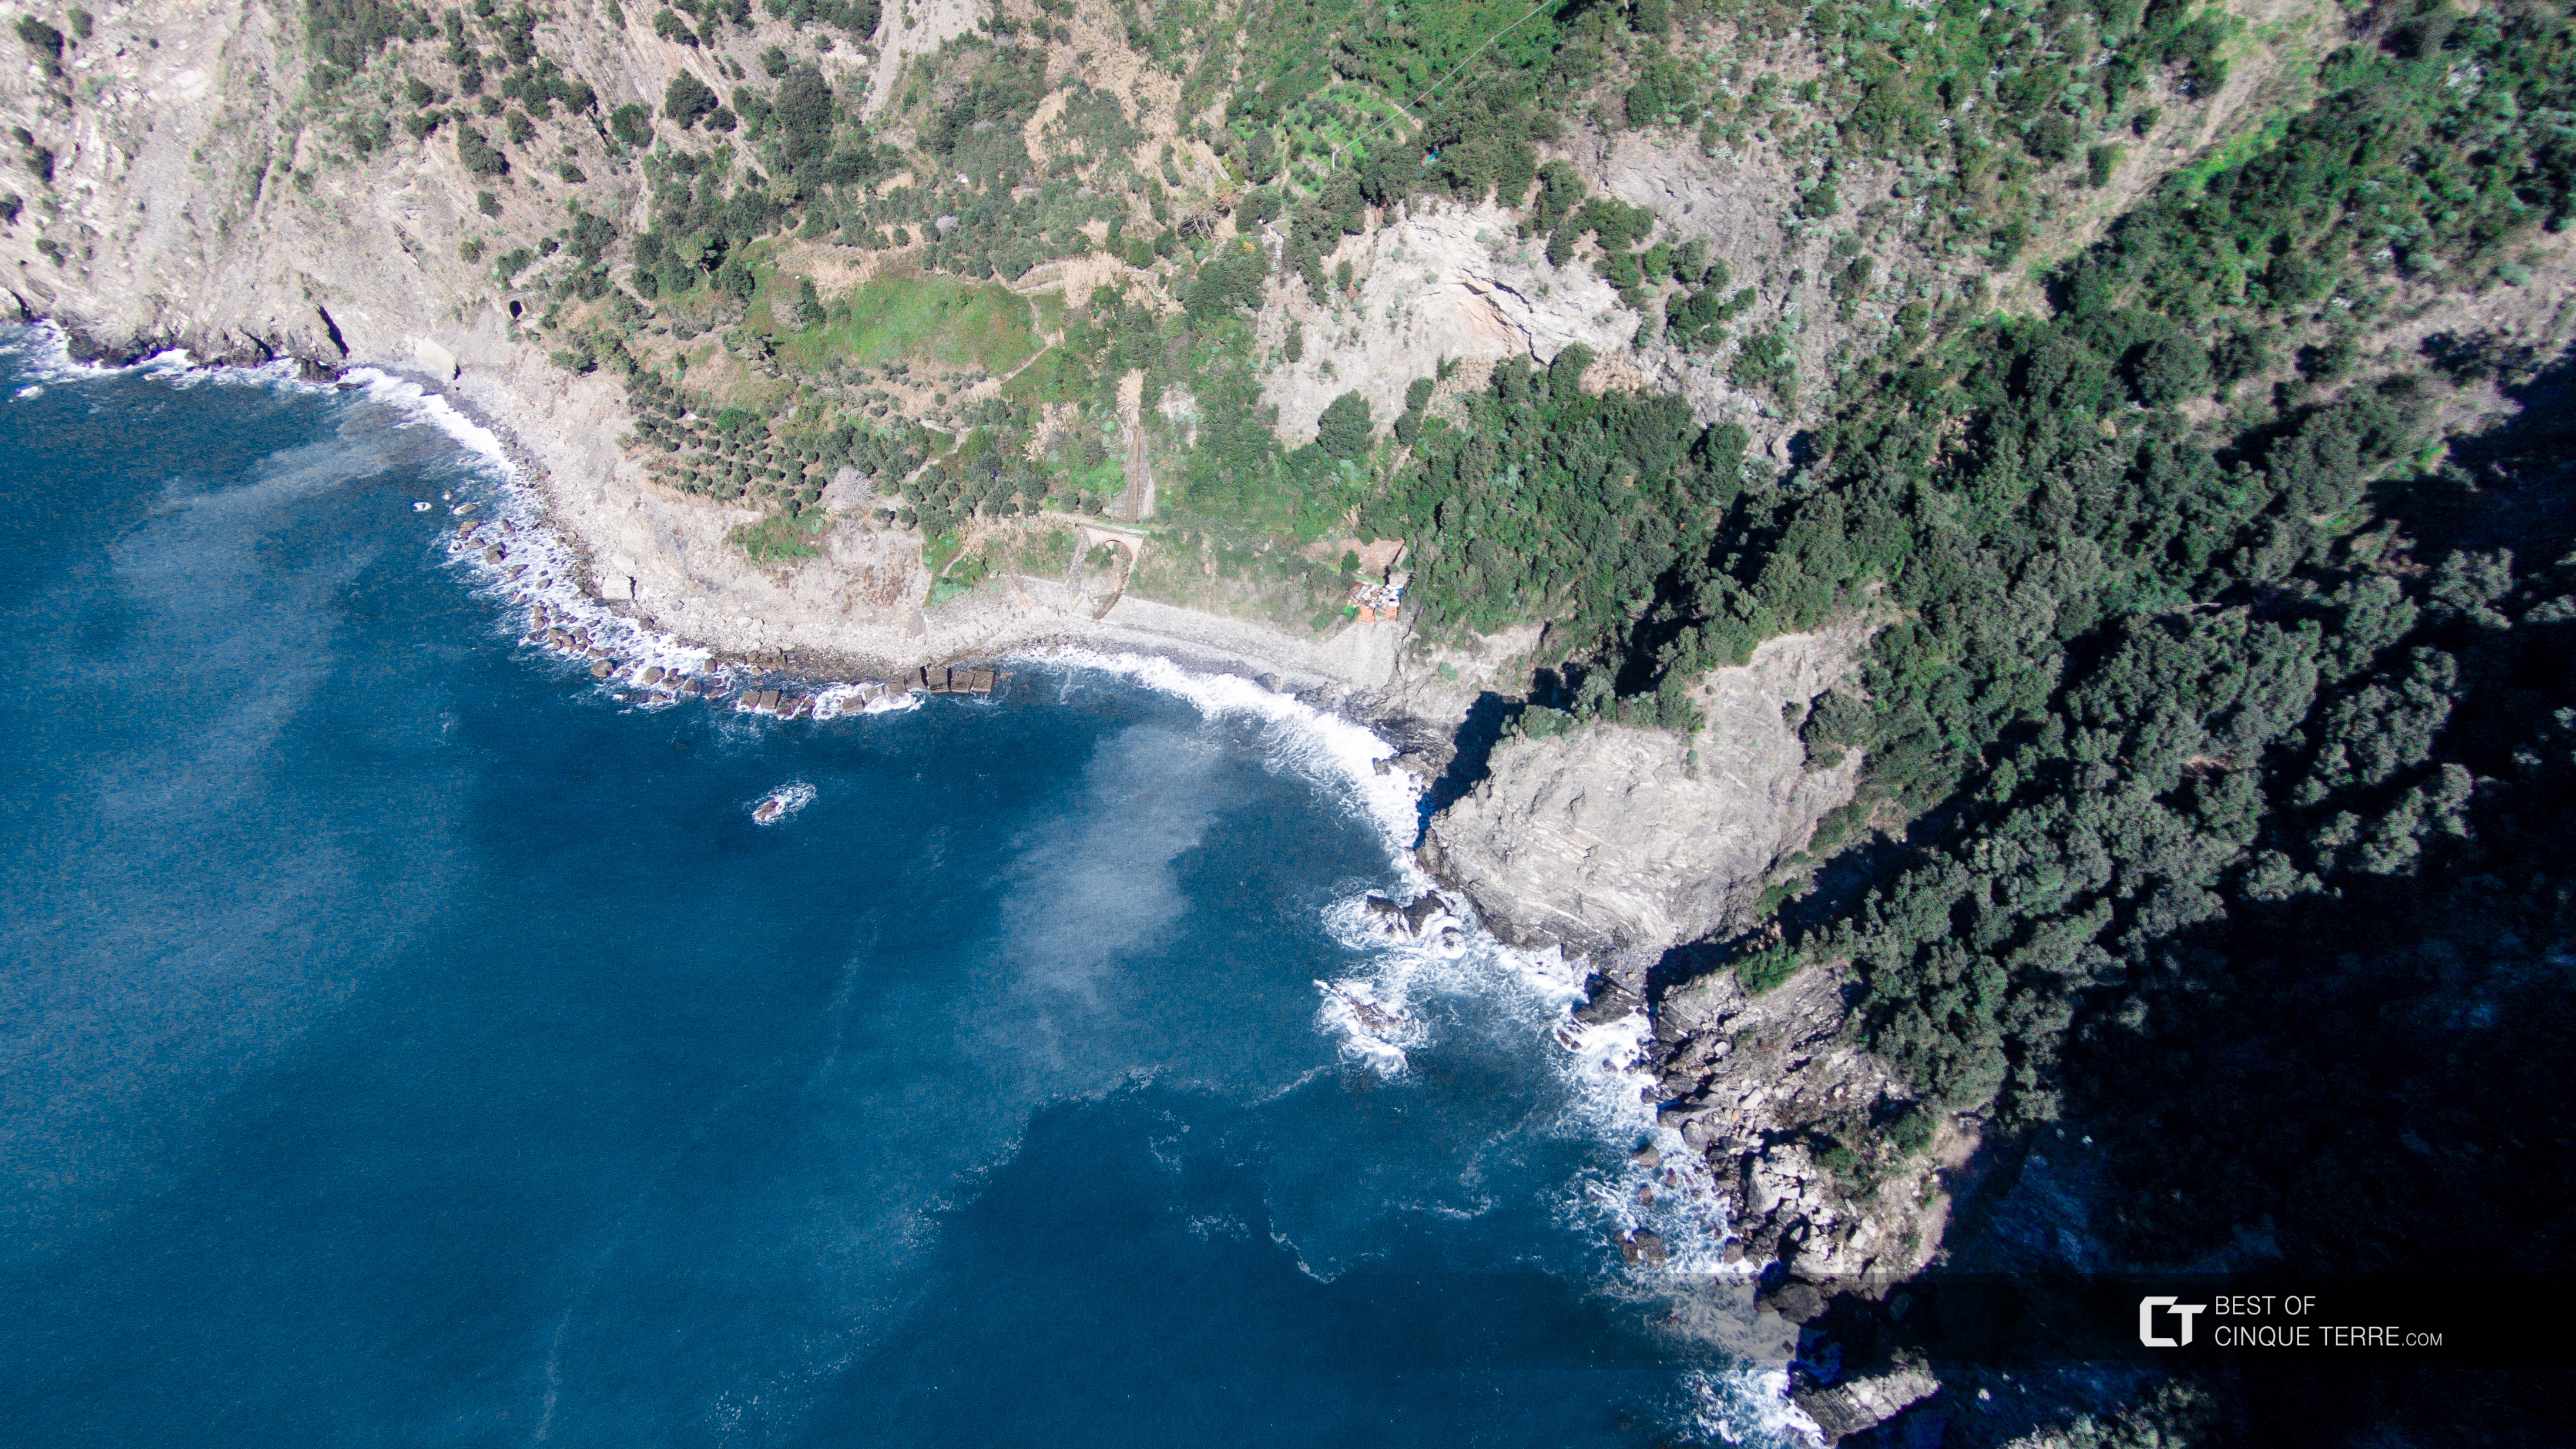 Aerial view of the nudist beach of Guvano in winter, Corniglia, Cinque Terre, Italy